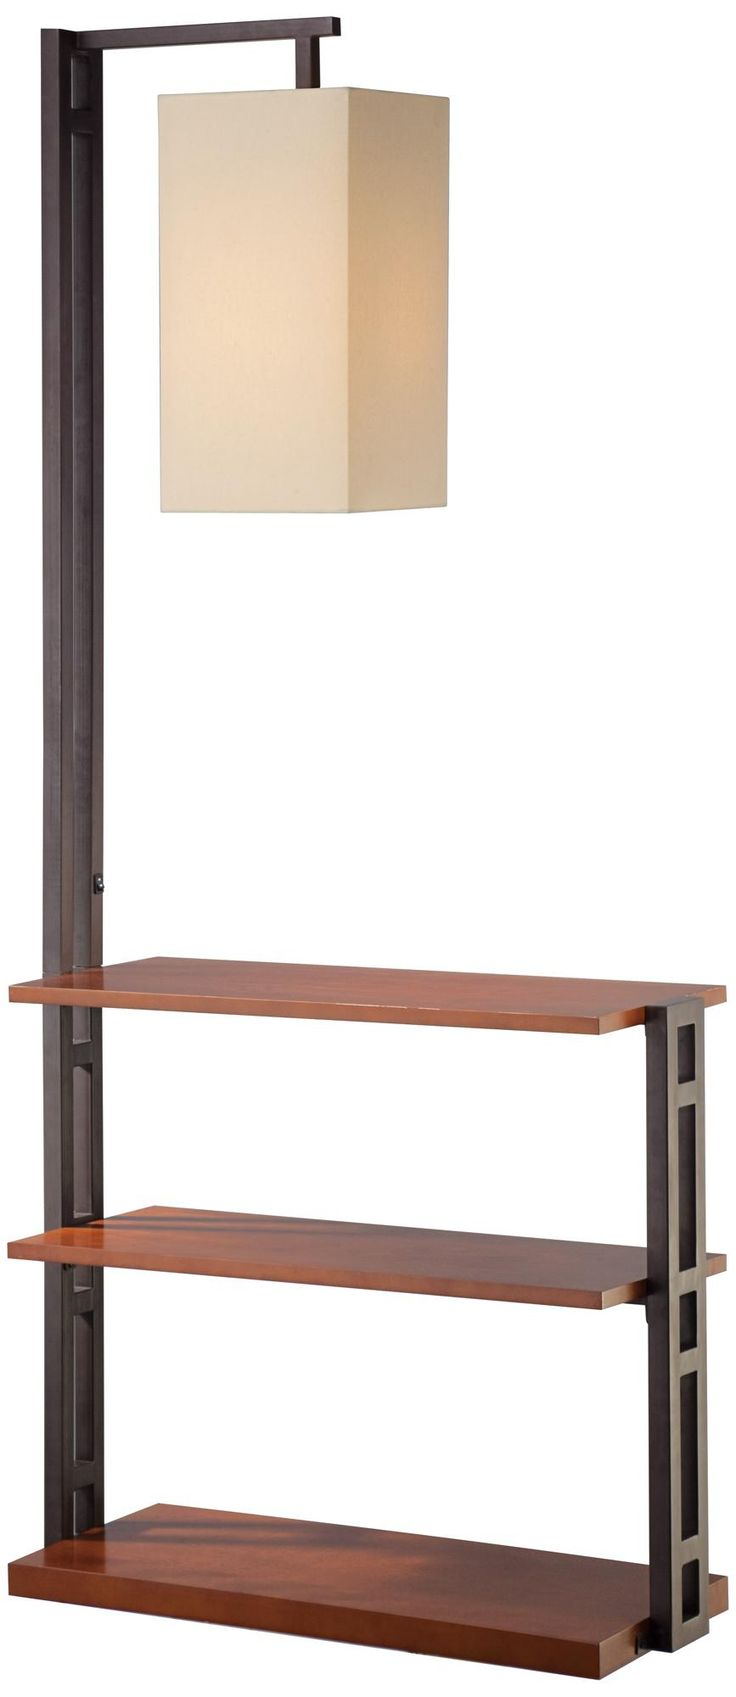 "Triple Shelf Floor Lamp With Beige Linen Shade - 66x30x12""; lampsplus.com"